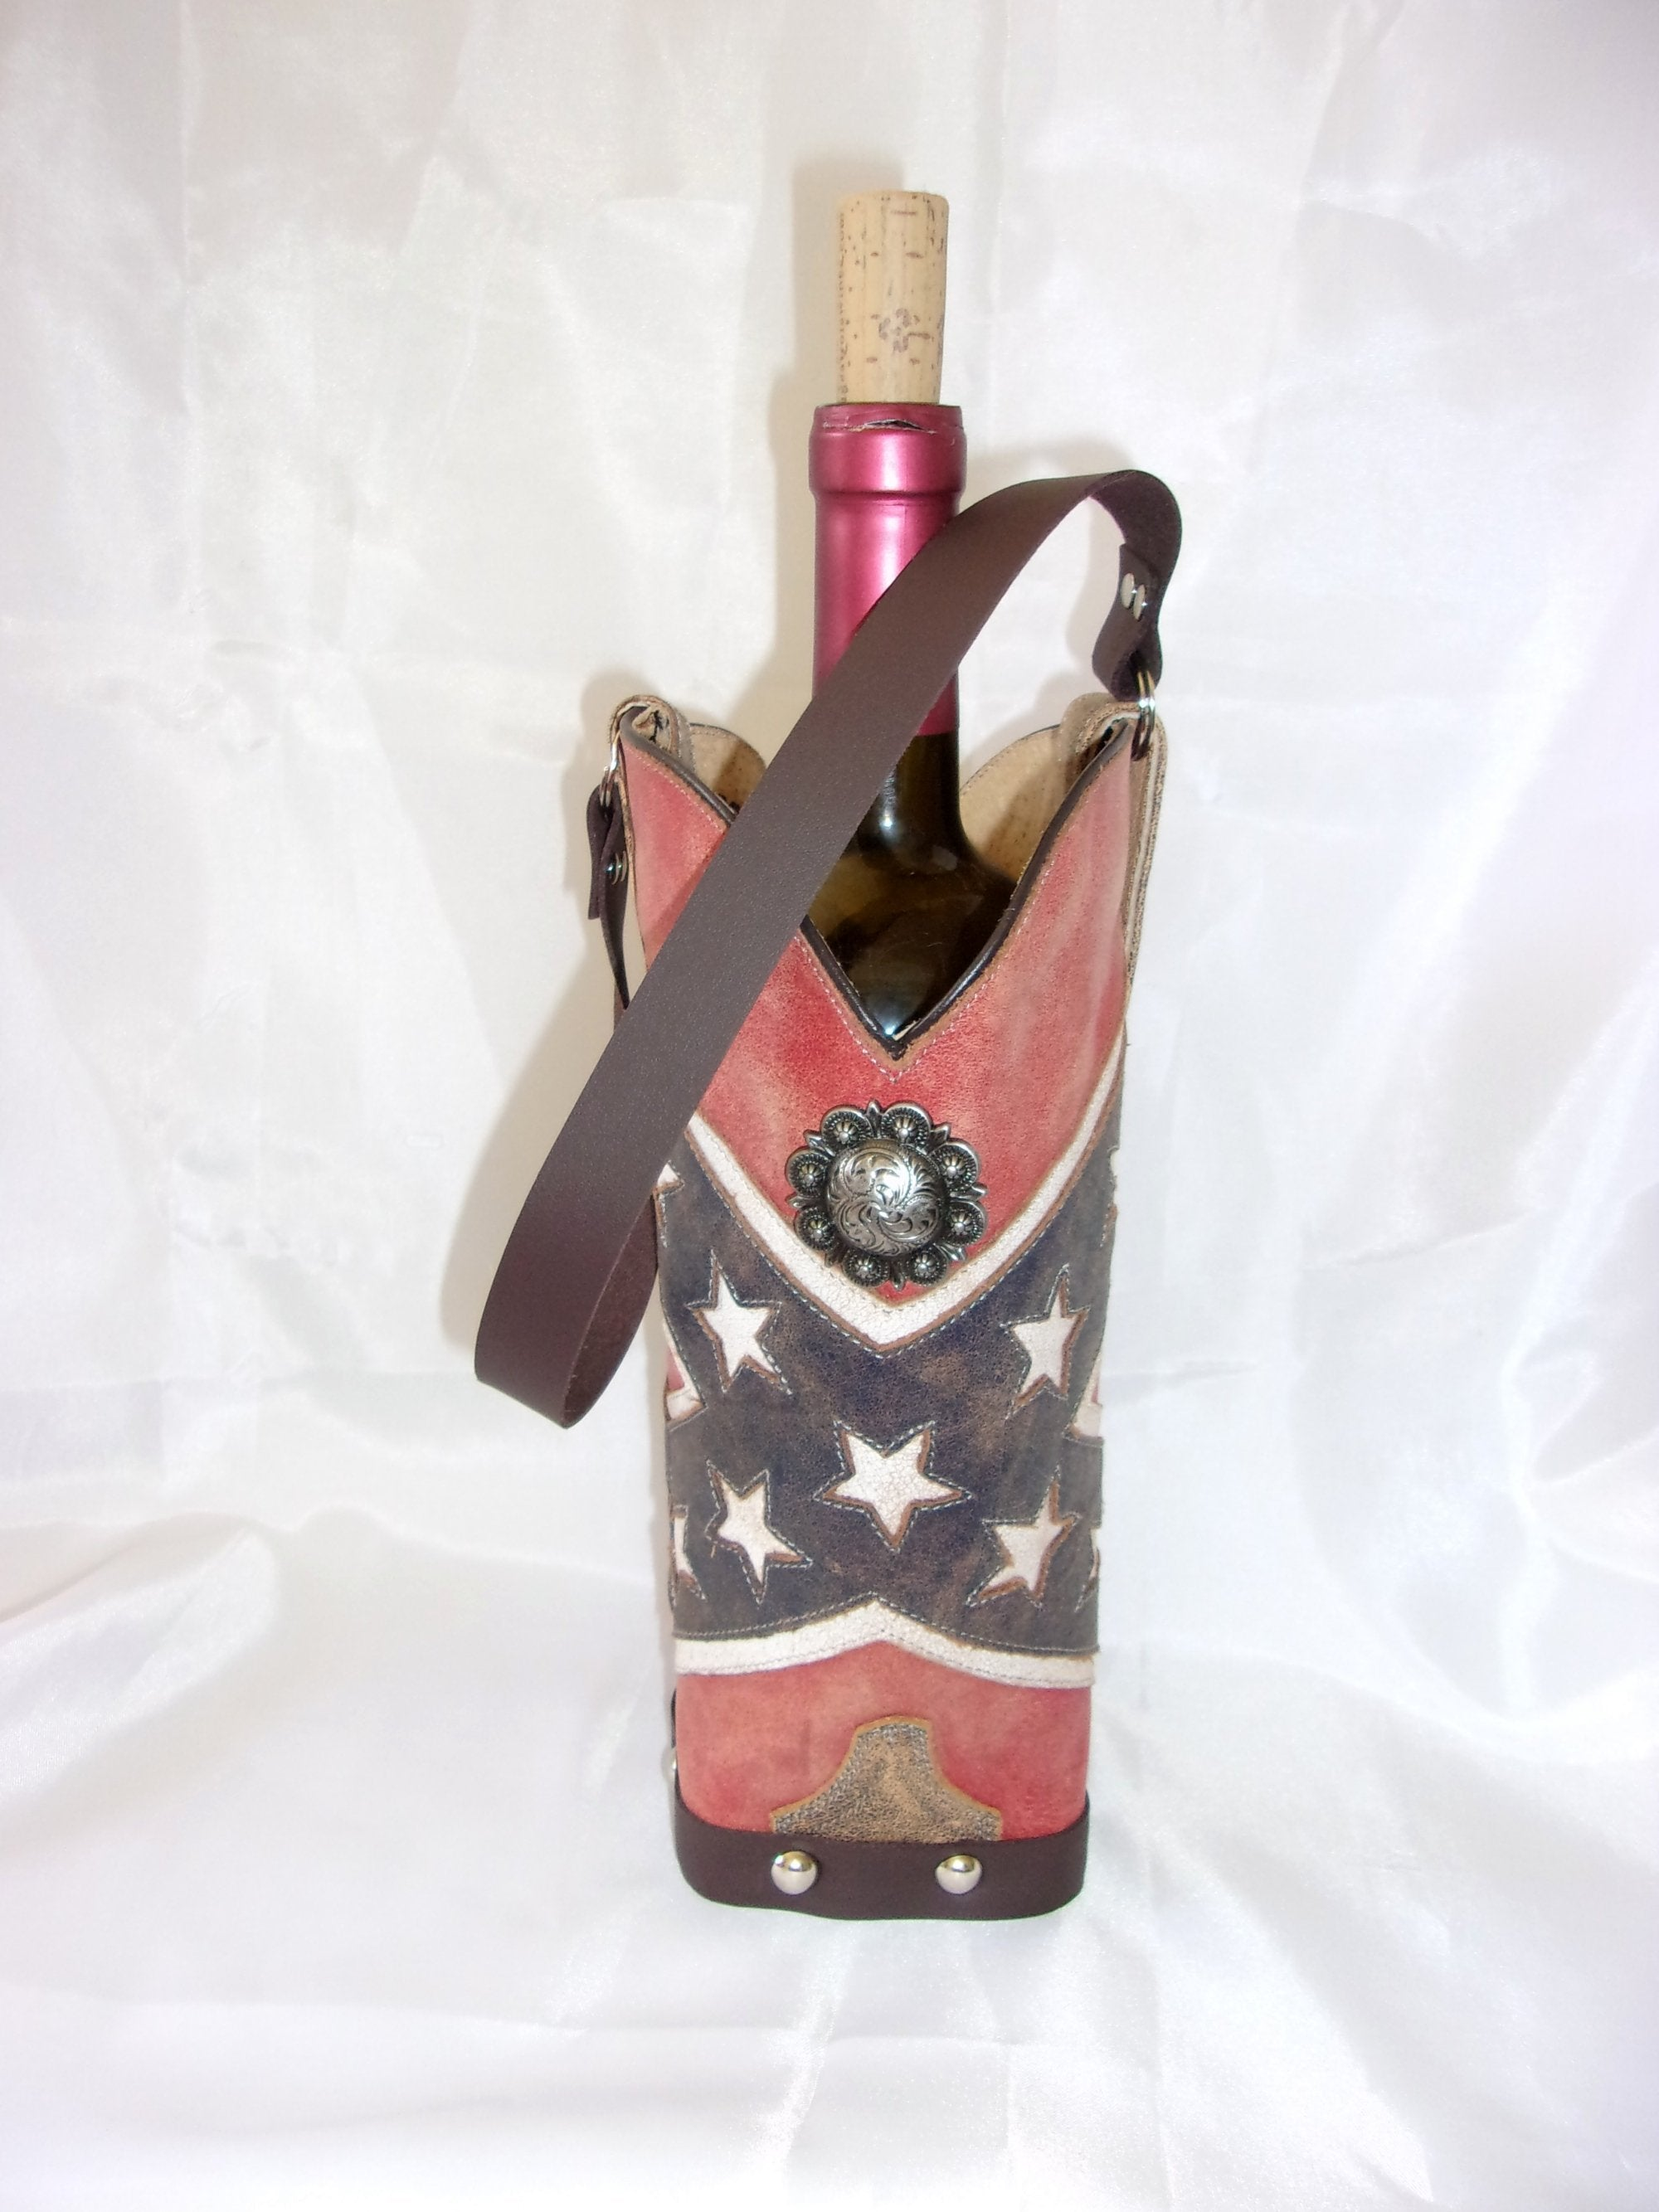 WT390 Cowboy Boot Leather Wine Tote - Cowboy Boot Purses by Chris Thompson for Distinctive Western Fashion